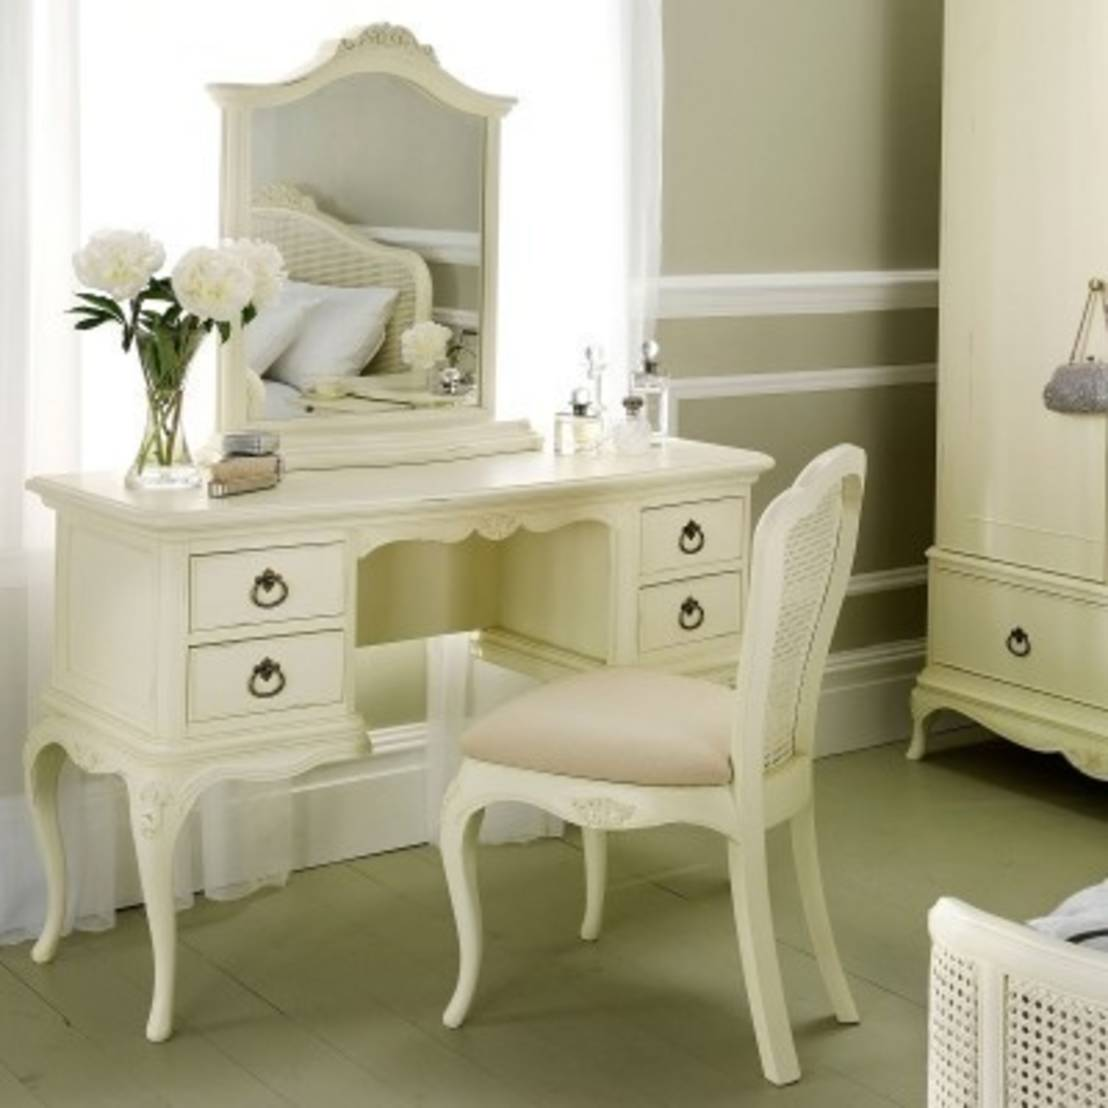 6 dressing table ideas